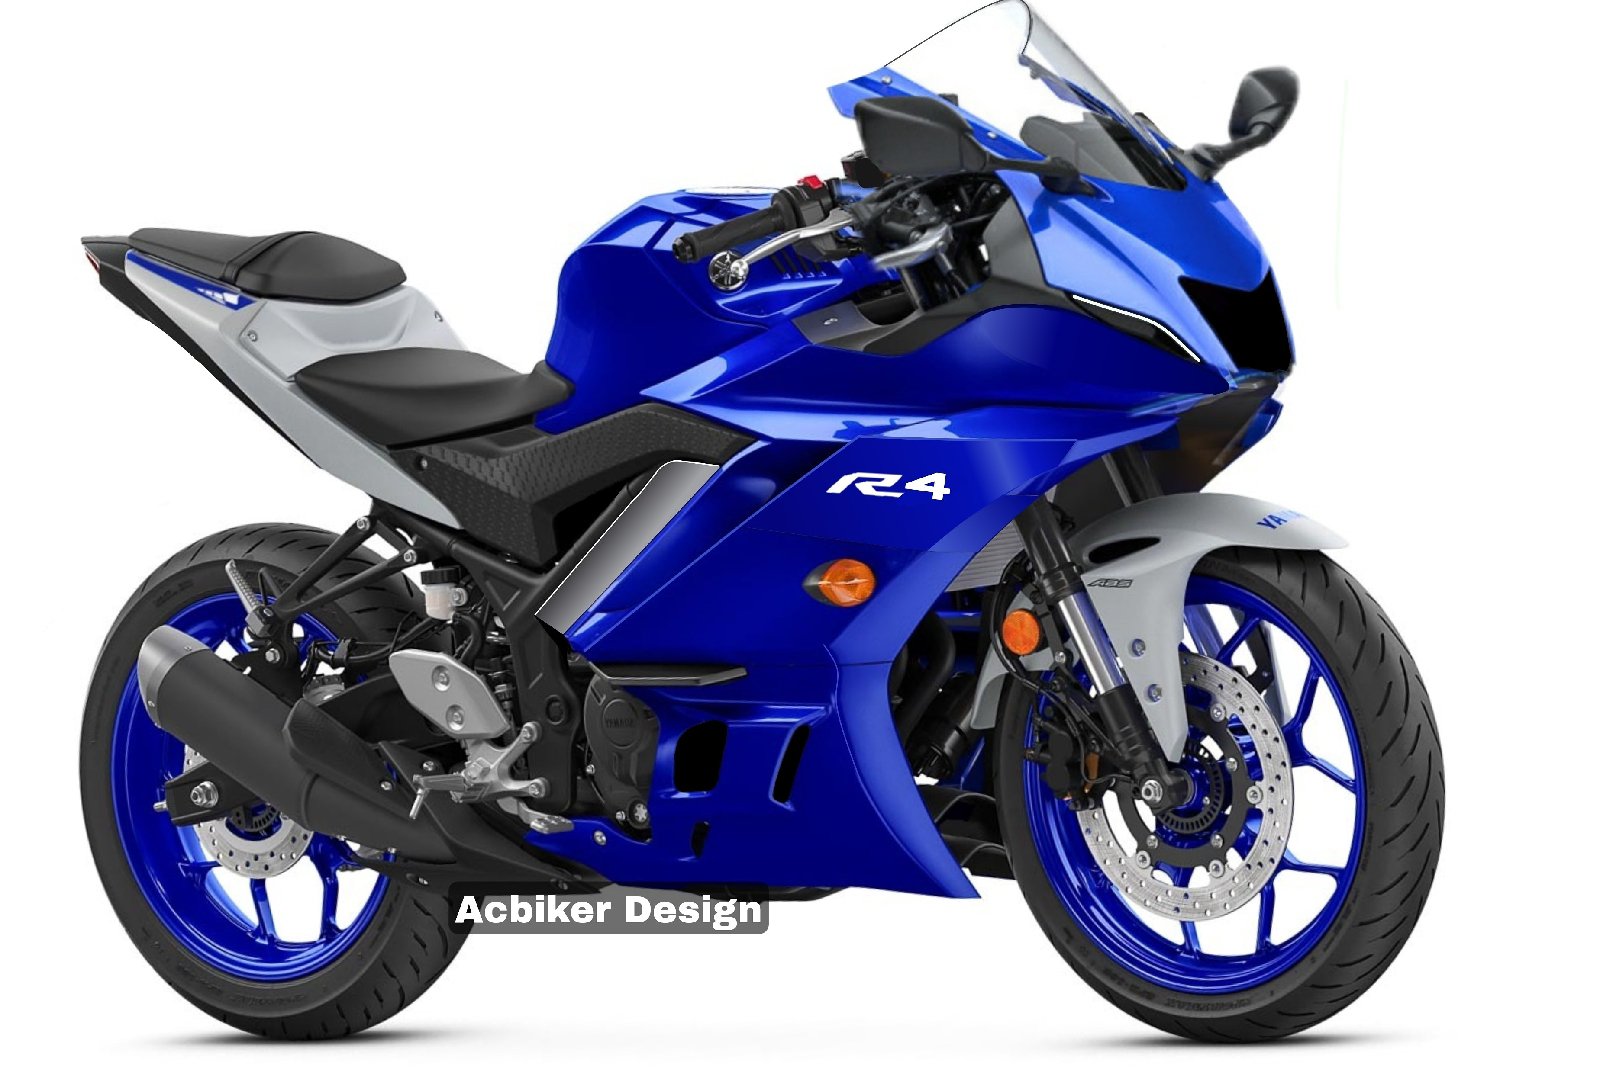 https://www.motorida.online/2021/07/2022-yamaha-yzf-r4-will-be-launch-in.html